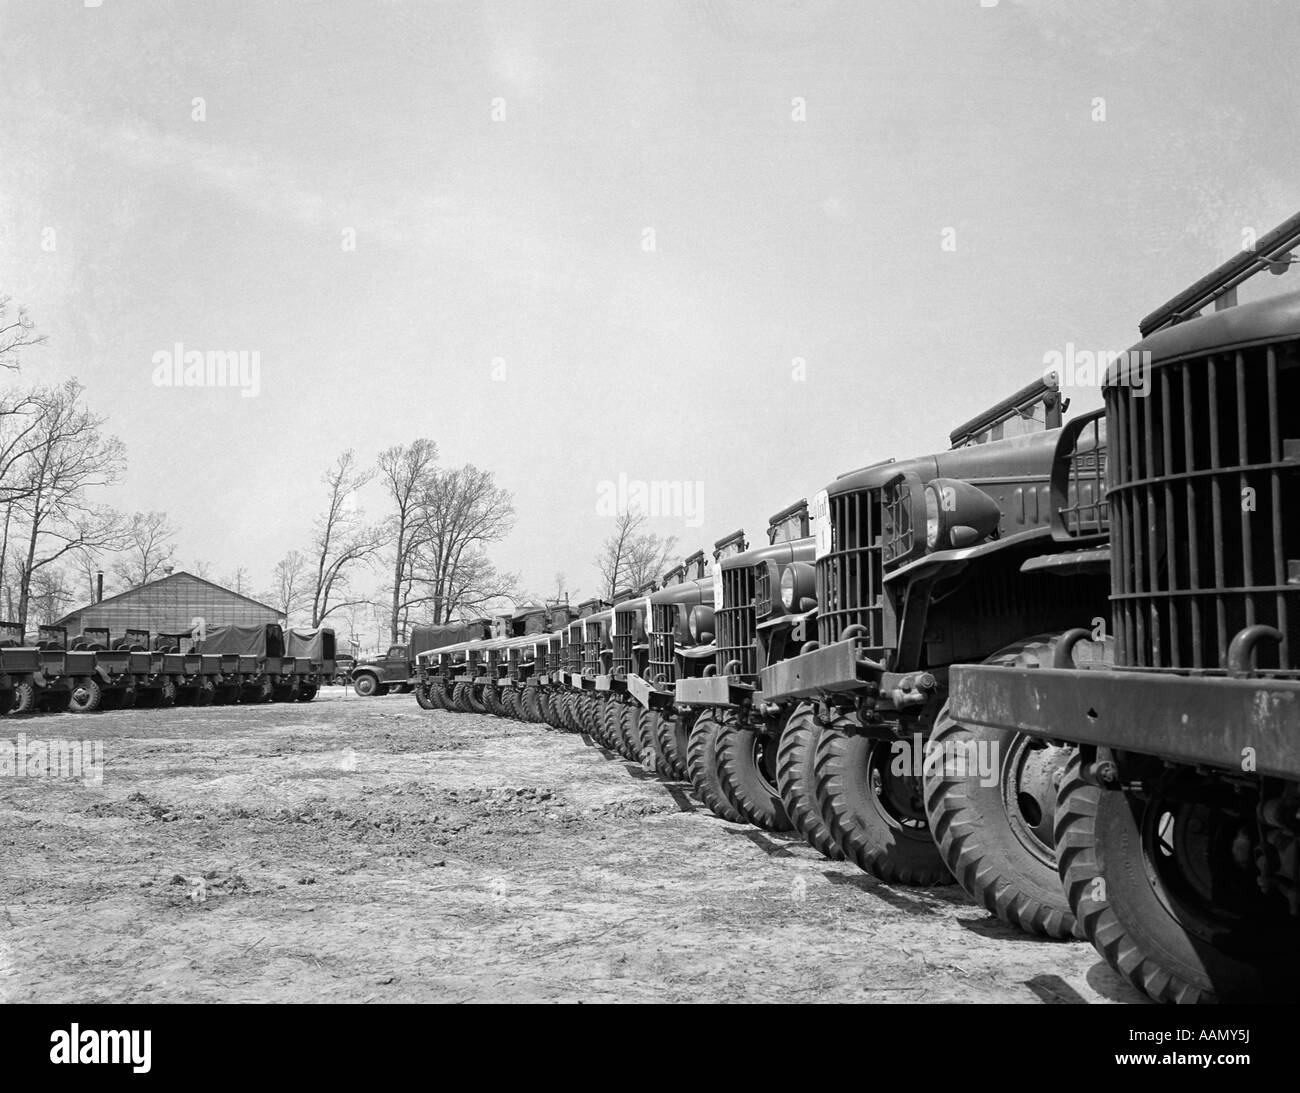 1940s APRIL 19 1941 ALIGNMENT ROW ROWS DODGE ARMY TRUCKS FORT DIX NJ - Stock Image